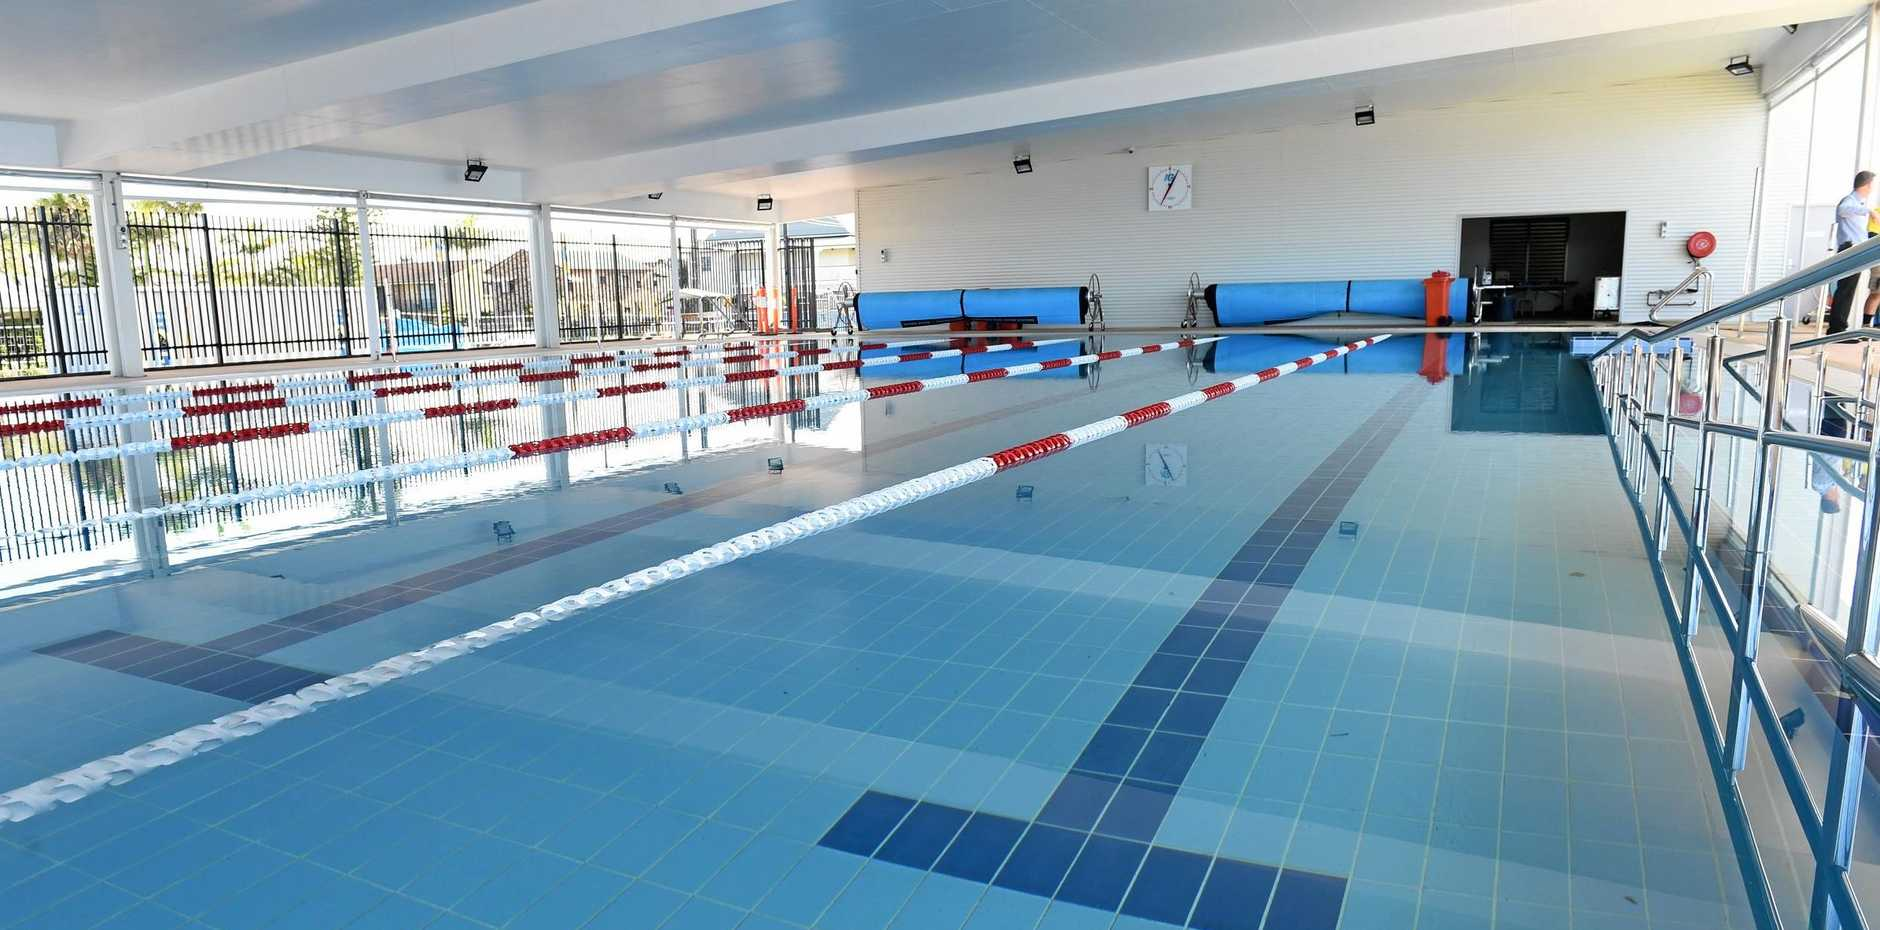 Defects found after $14 million pool upgrades | Northern Star